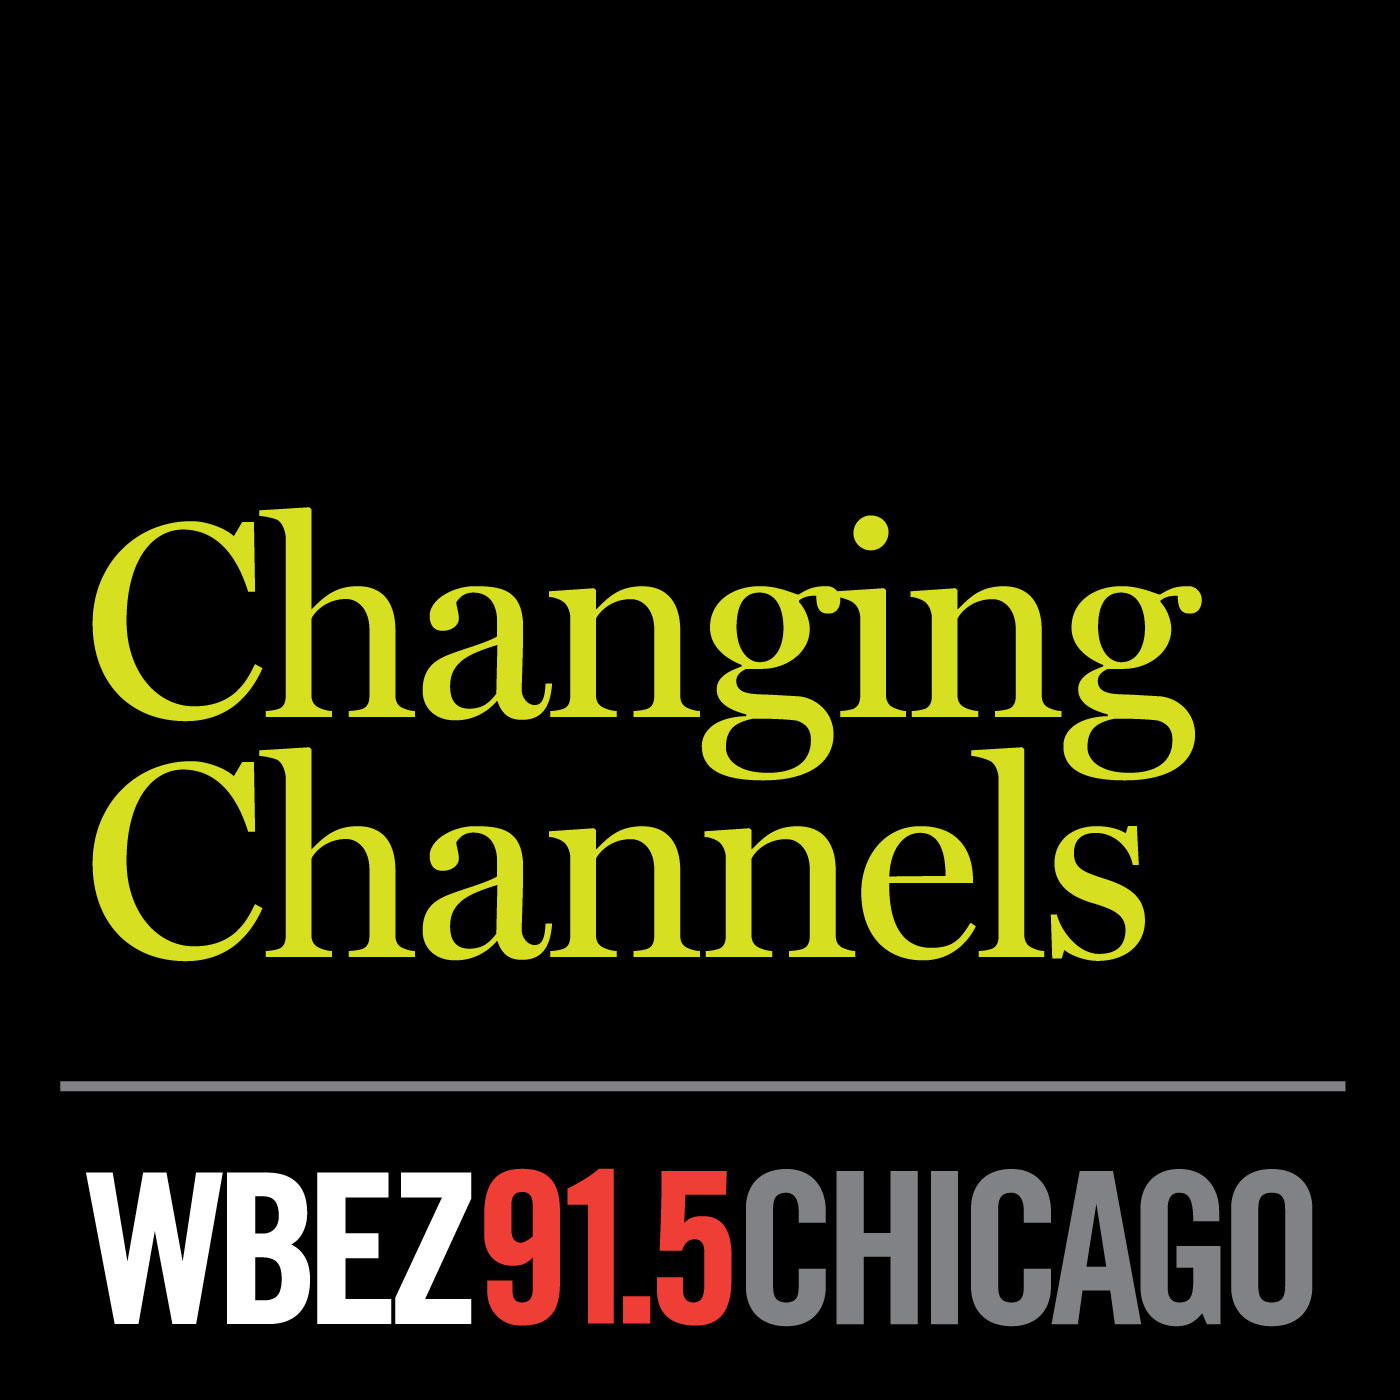 WBEZ's Changing Channels